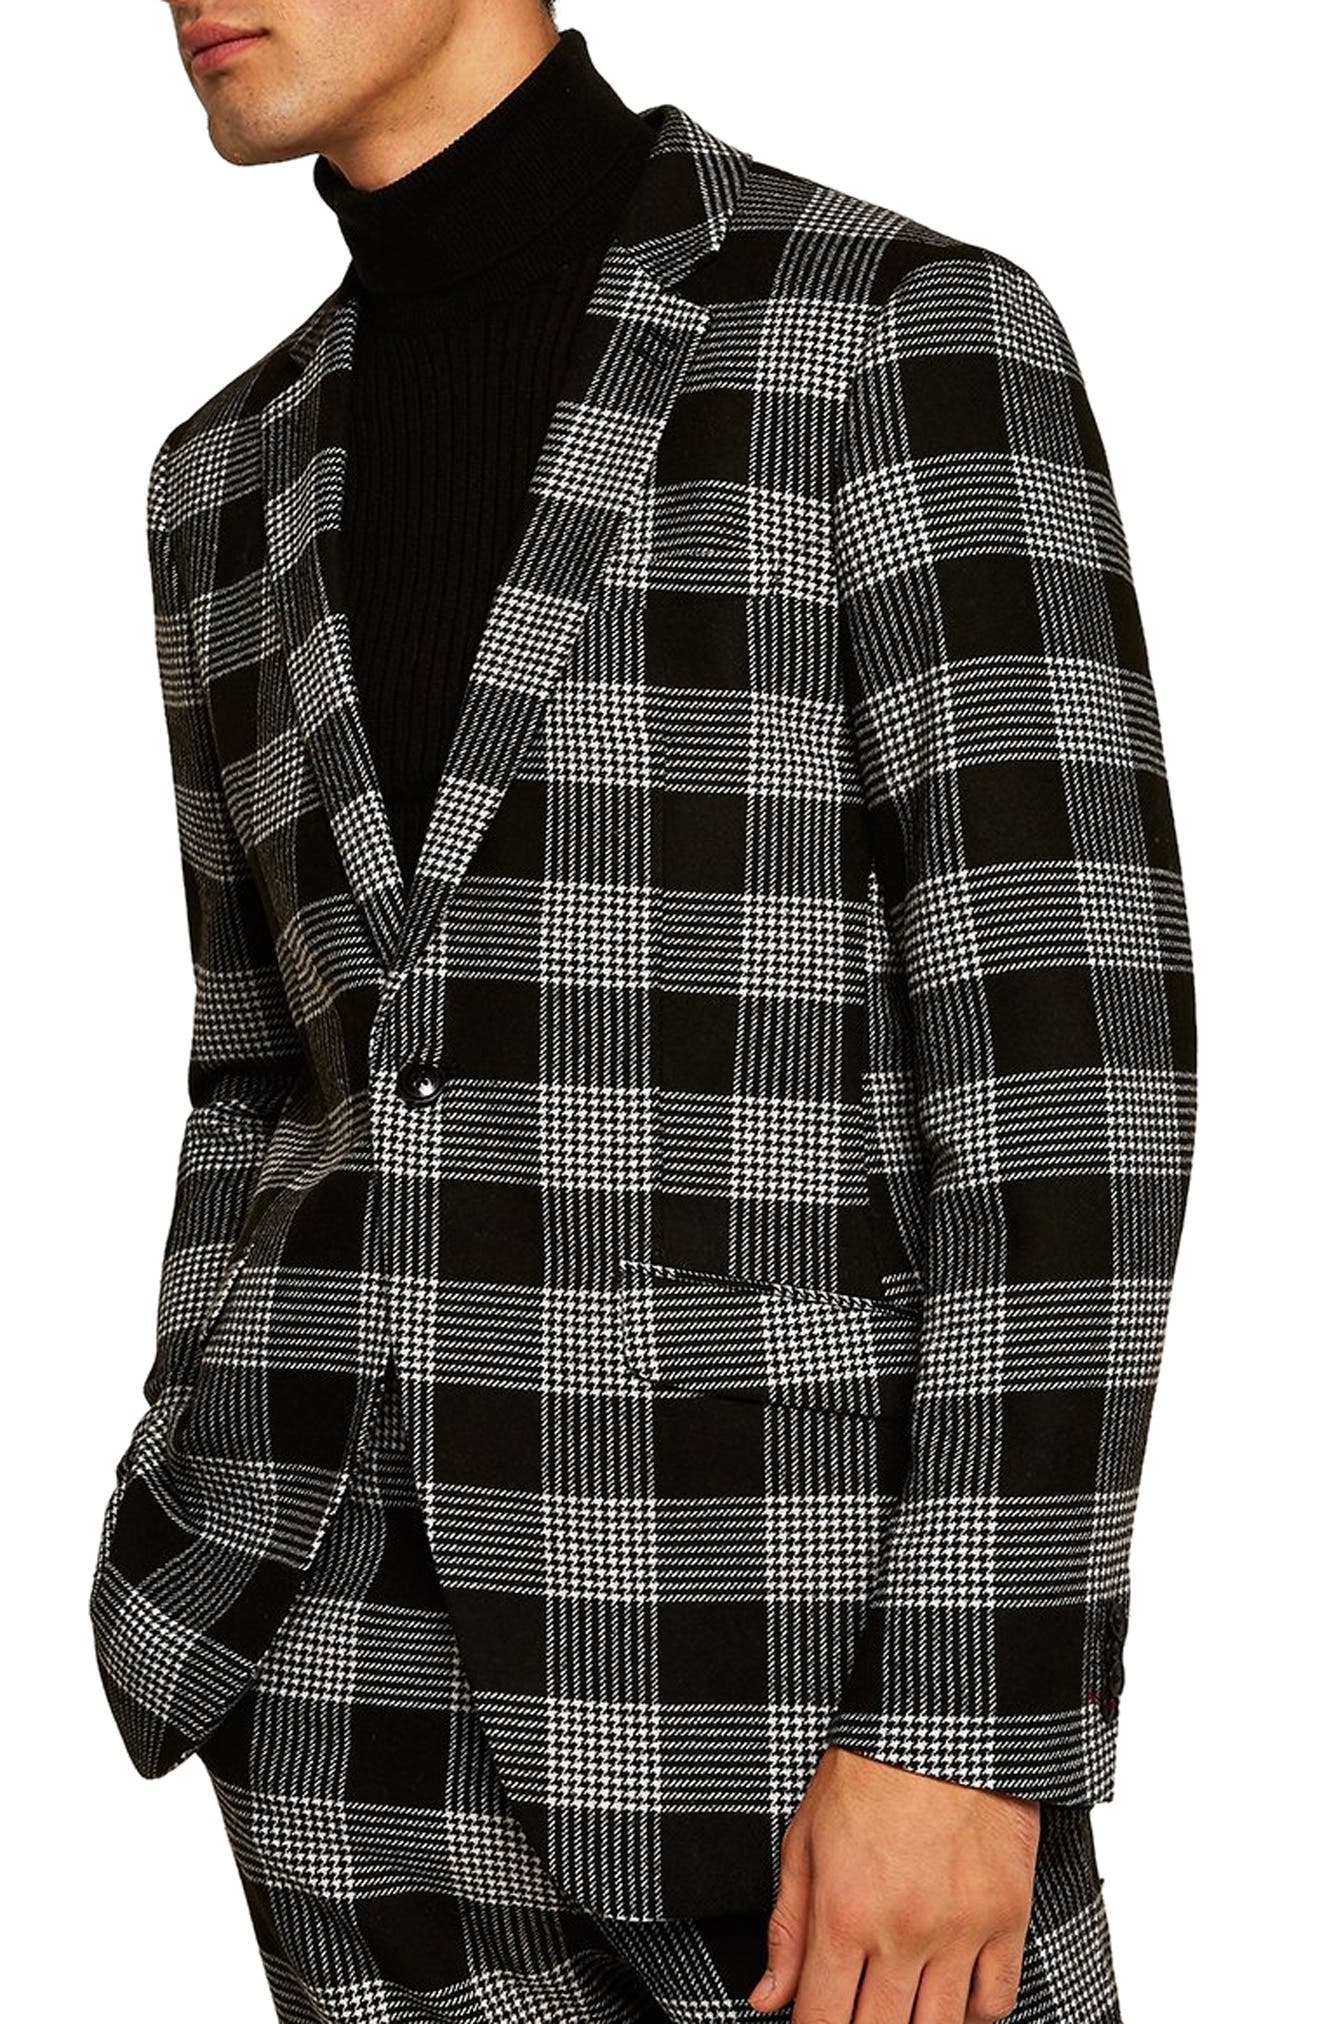 TOPMAN Leigh Classic Check Slim Fit Suit Jacket in Black Multi